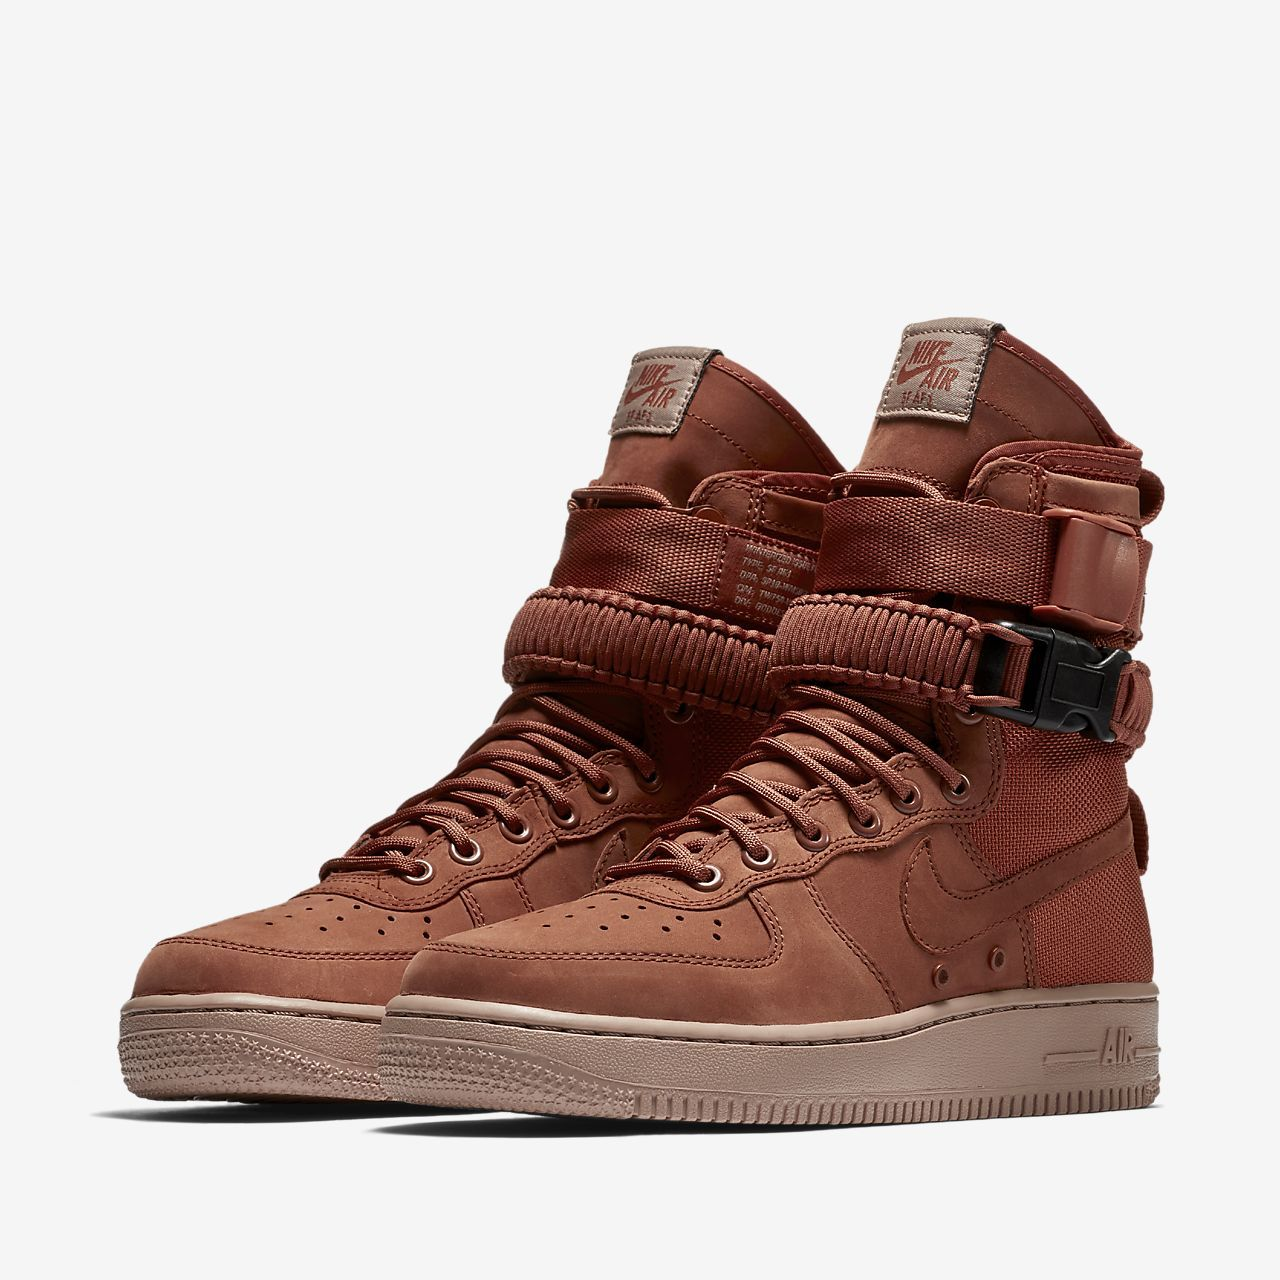 check out 86485 d0897 Nike SF Air Force 1 Women's Boot | Snєakєrs FєtisᏂ Too TᏂo ...